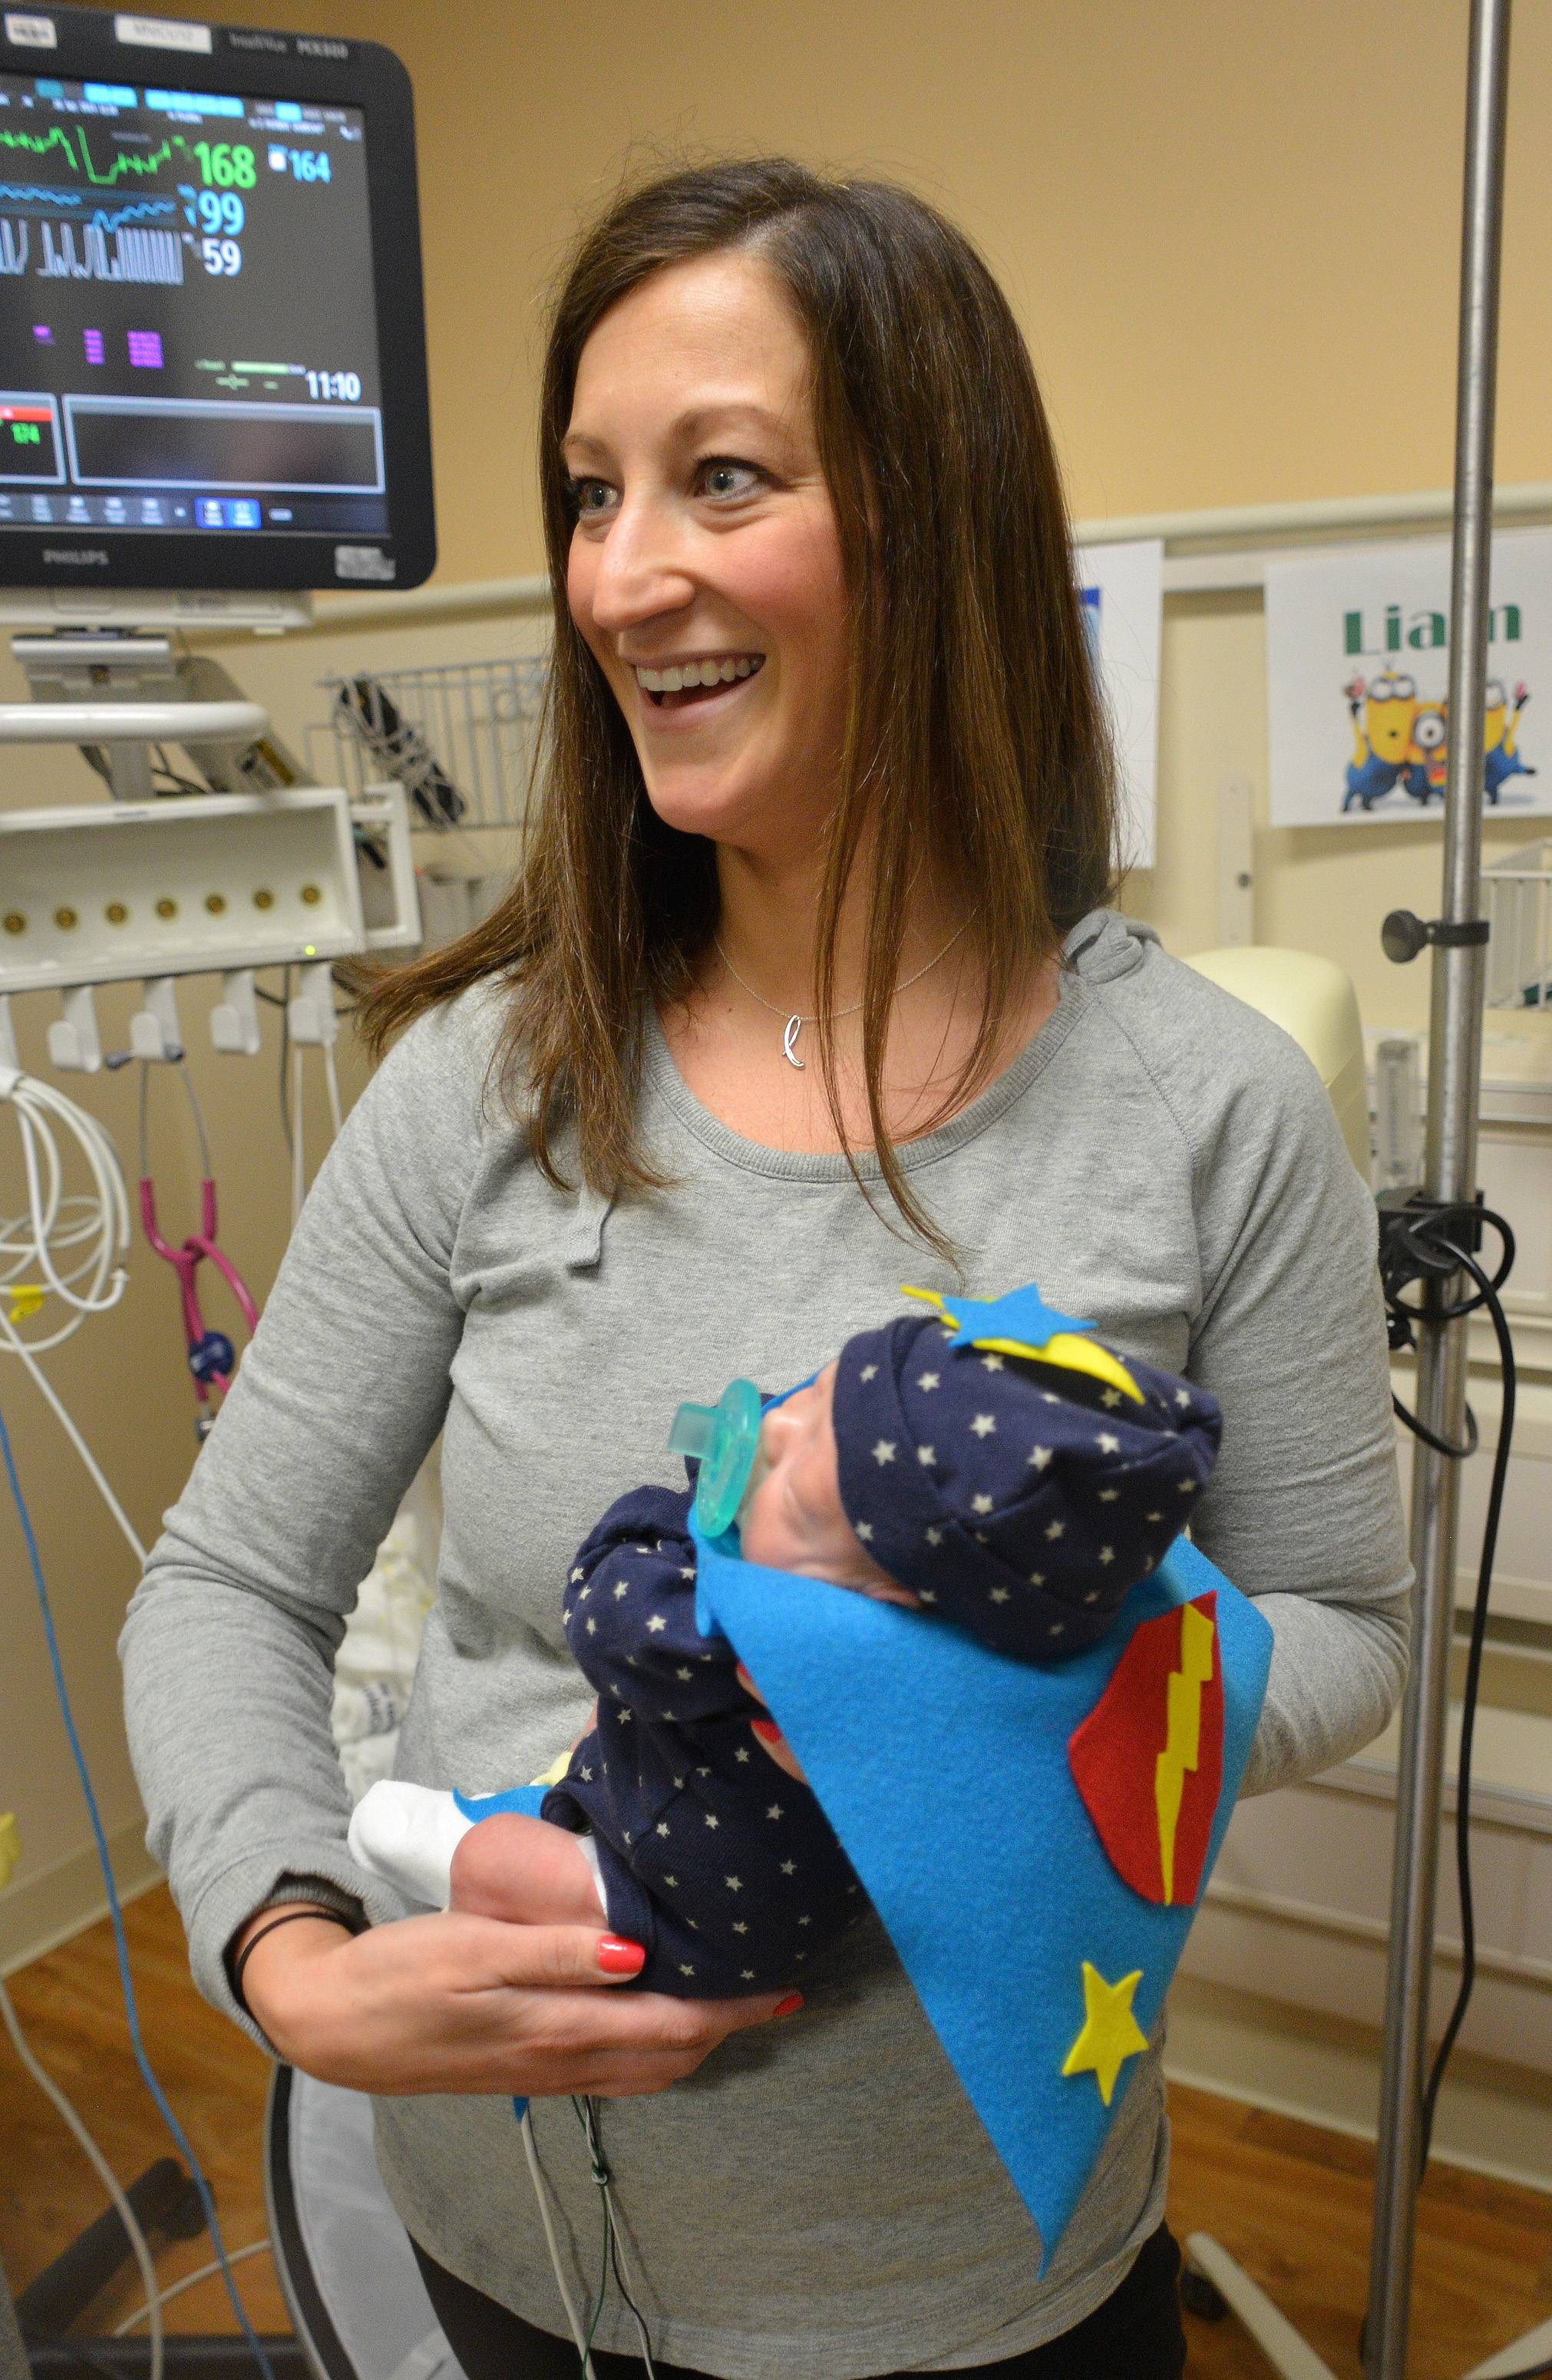 Even tiny patients in the neonatal intensive care unit at Central DuPage Hospital donned capes for National Superhero Day. Jaime Zilch of Wheaton holds her tiny superhero son, Liam.